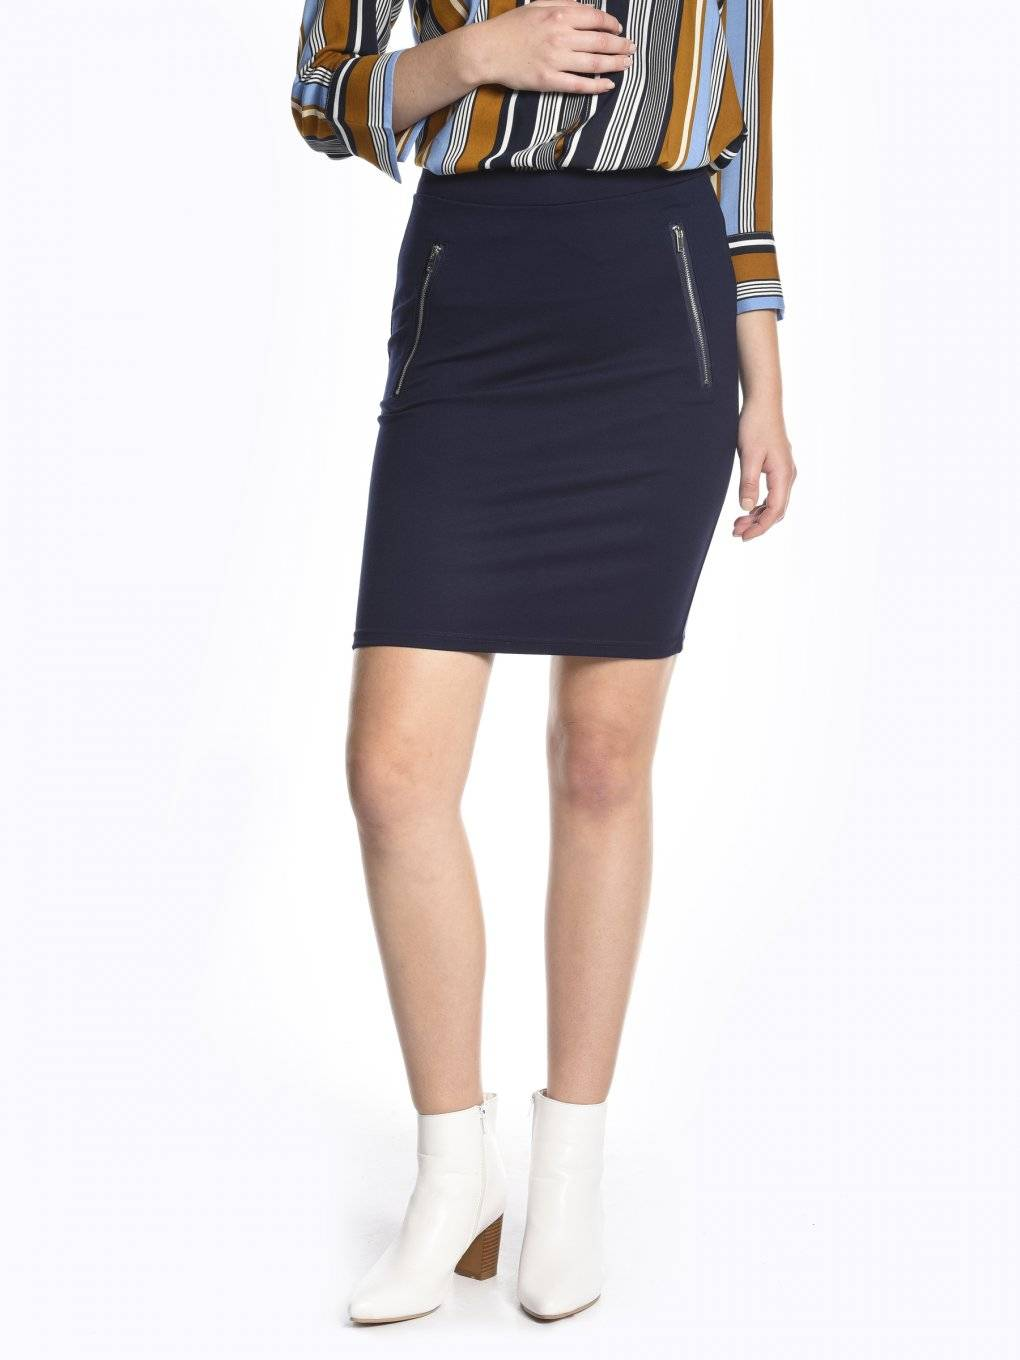 Bodycon skirt with zippers